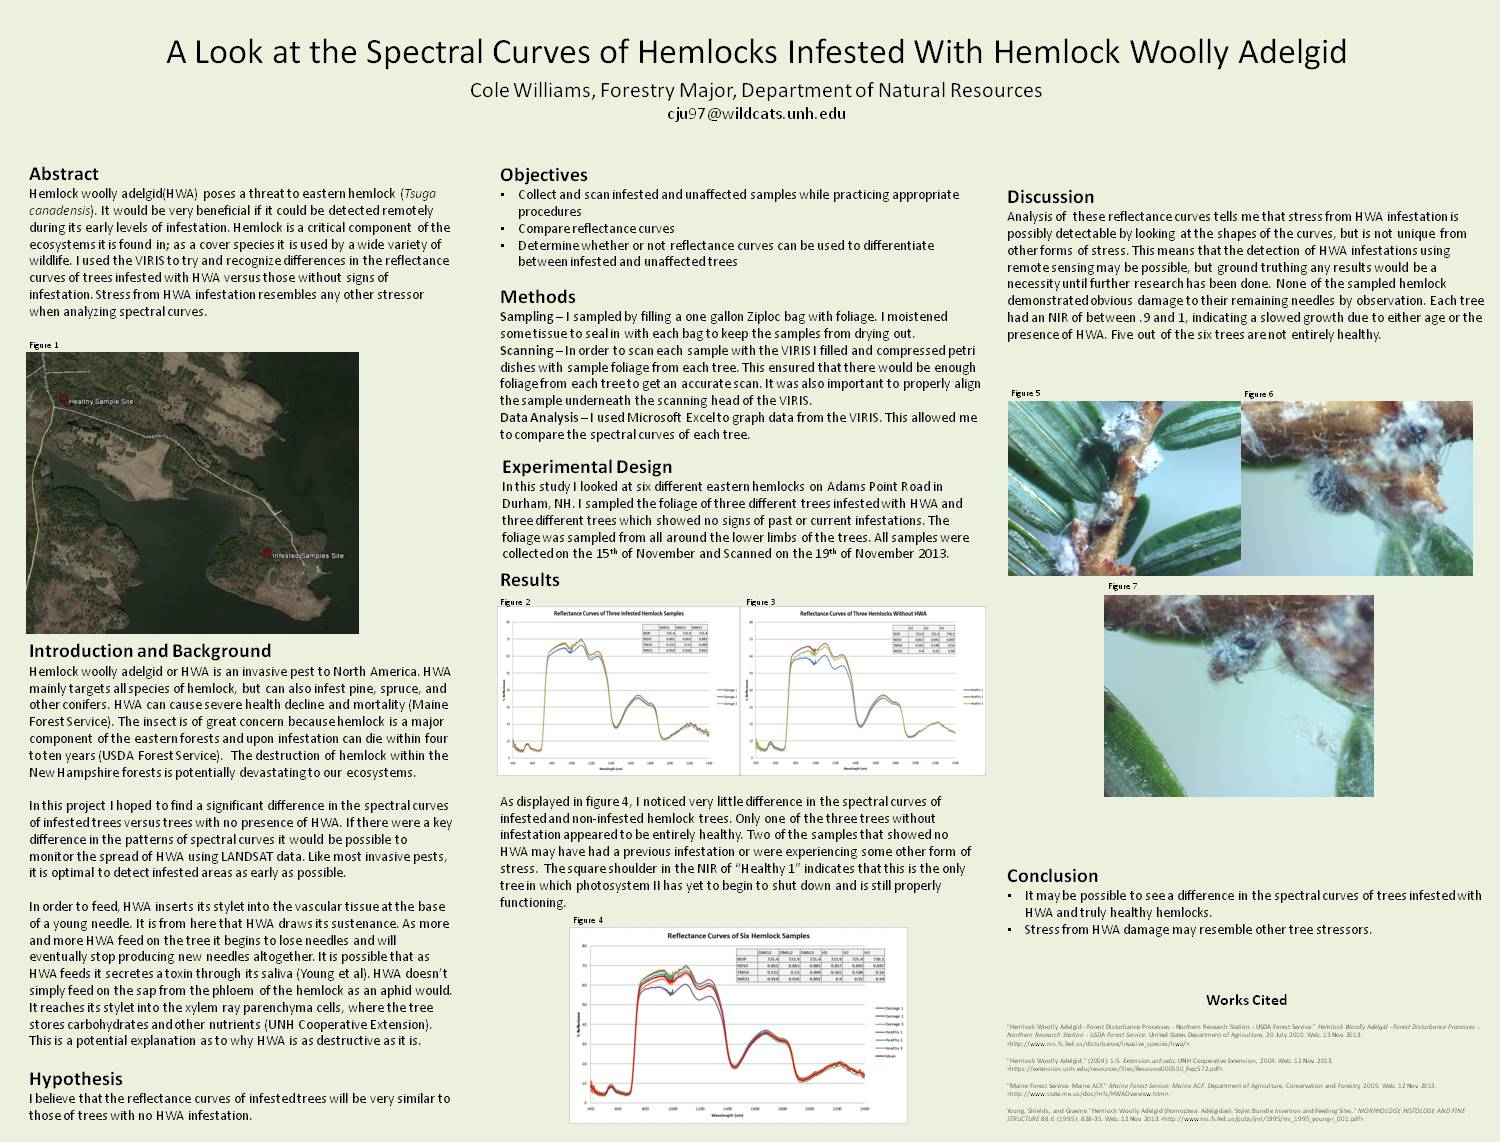 A Look At The Spectral Curves Of Hemlocks Infested With Hemlock Woolly Adelgid by cju97